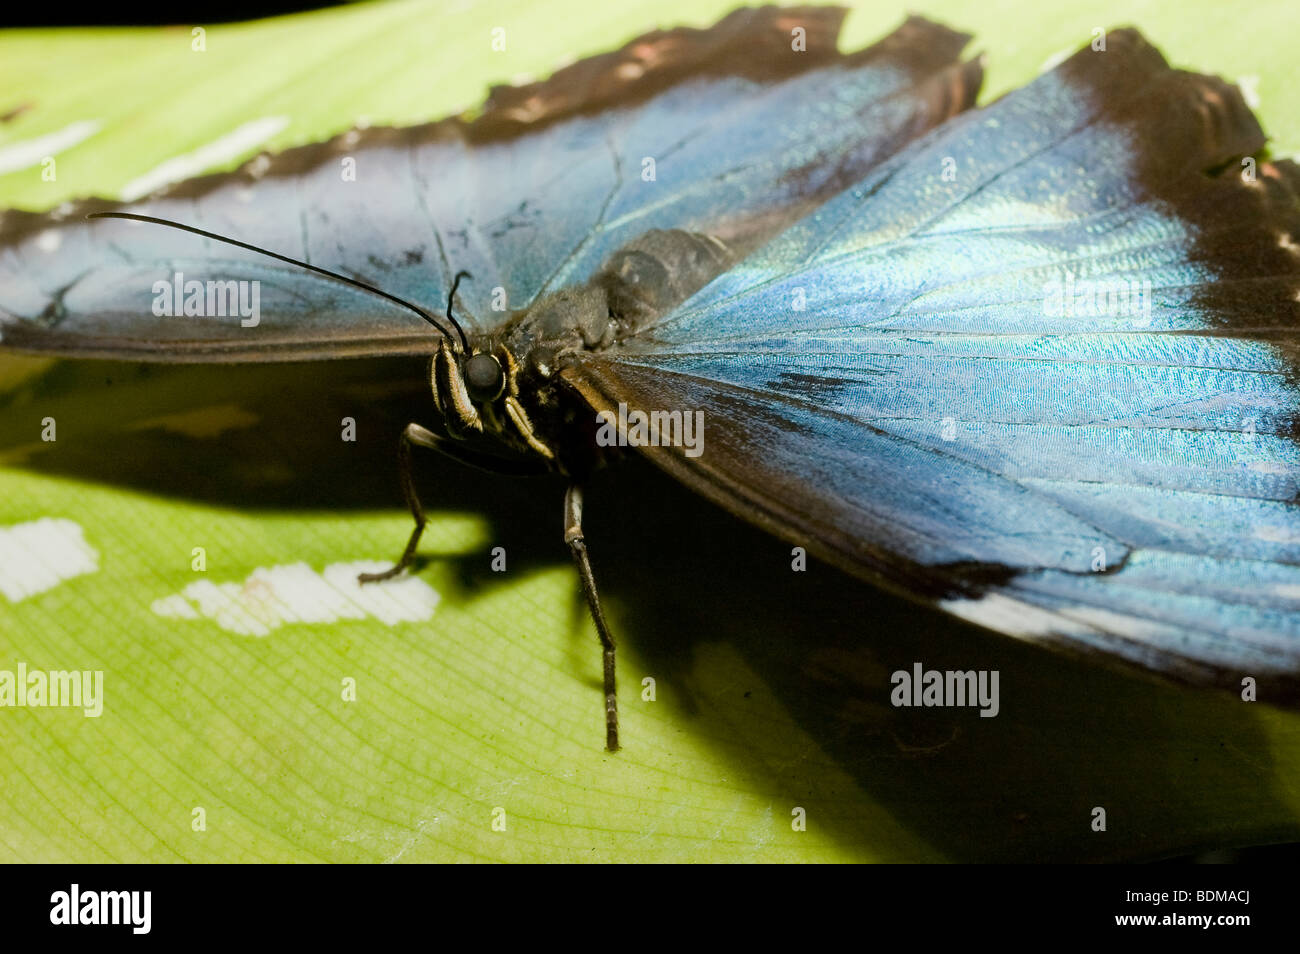 Blue morpho butterfly on green leaf close up of eye and antennae - Stock Image